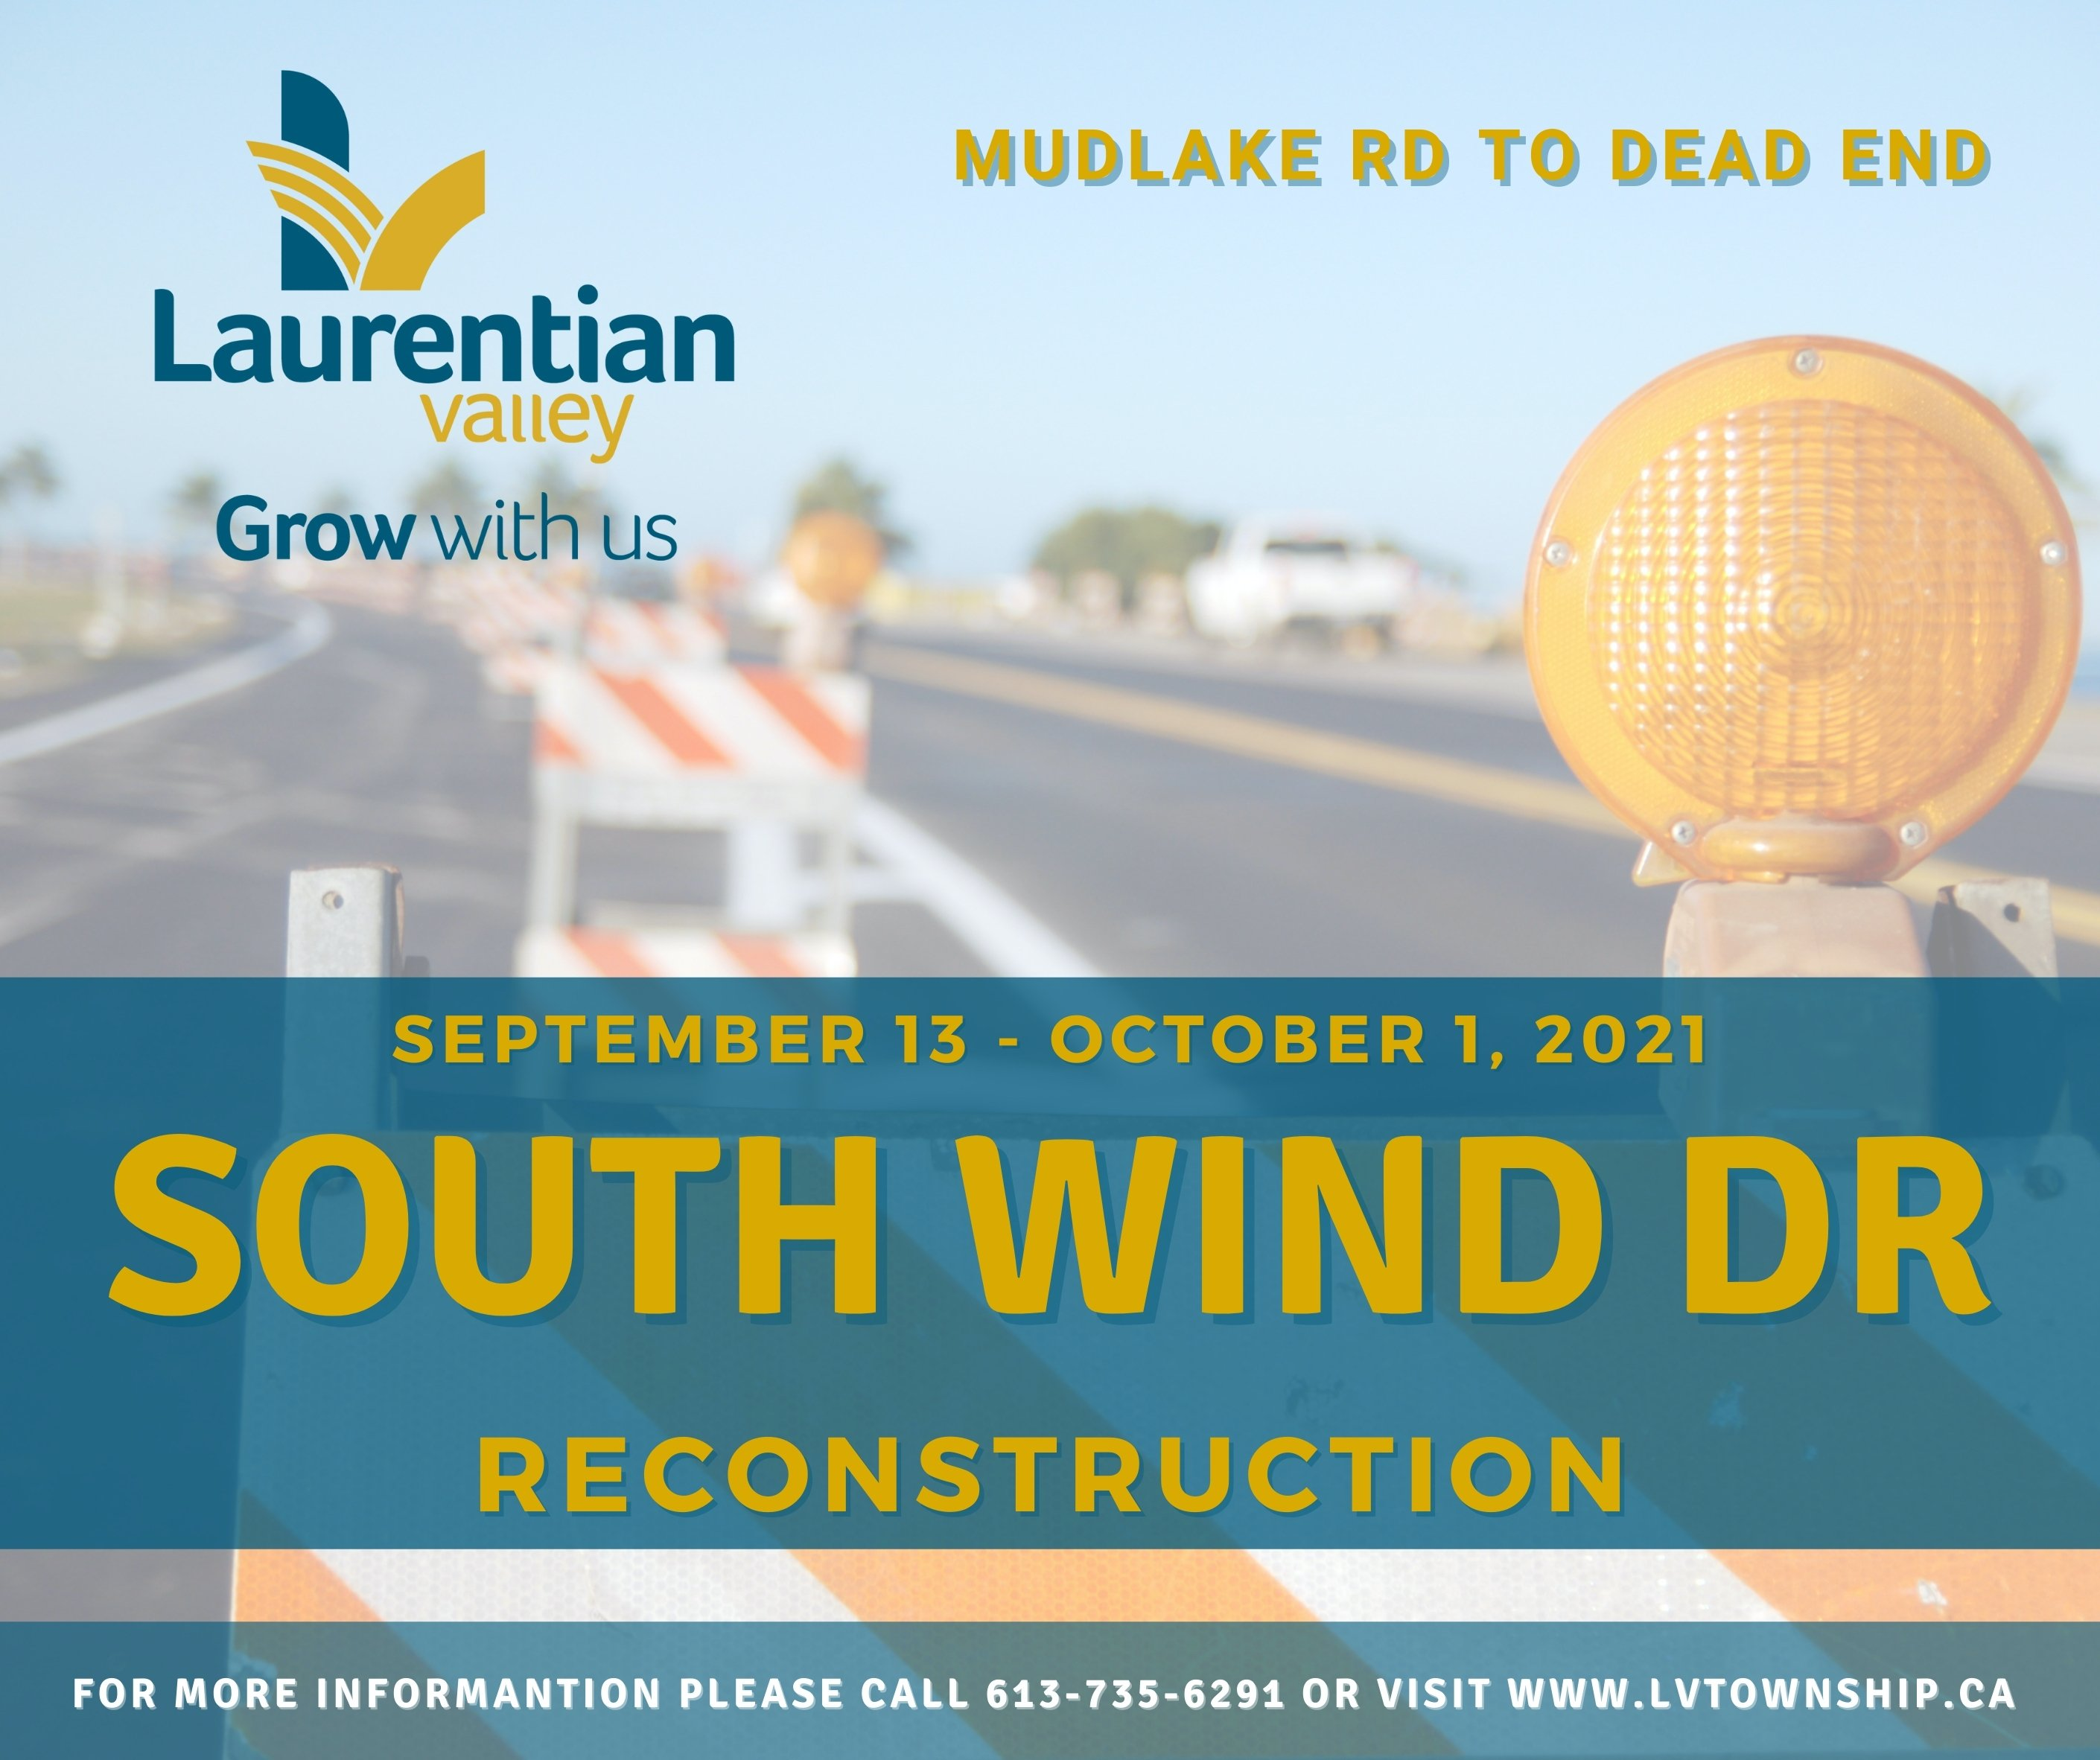 Graphic informing of South Wind Drive Reconstruction.